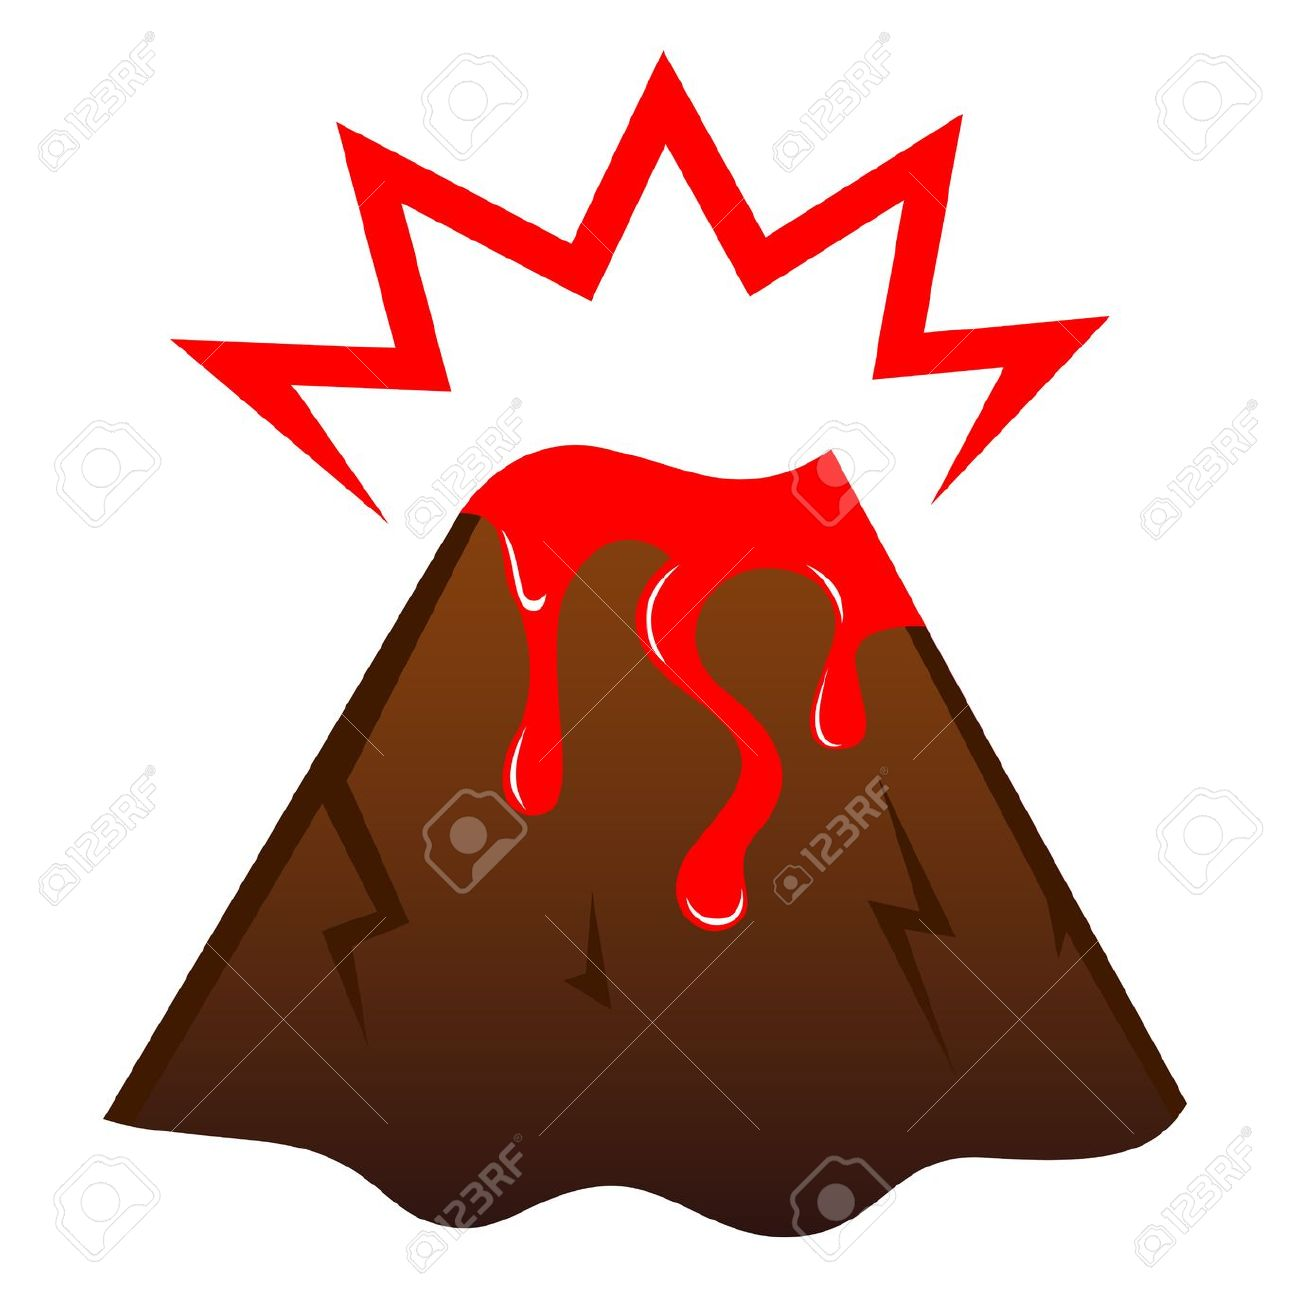 Island Volcano Eruption clipart #9, Download drawings